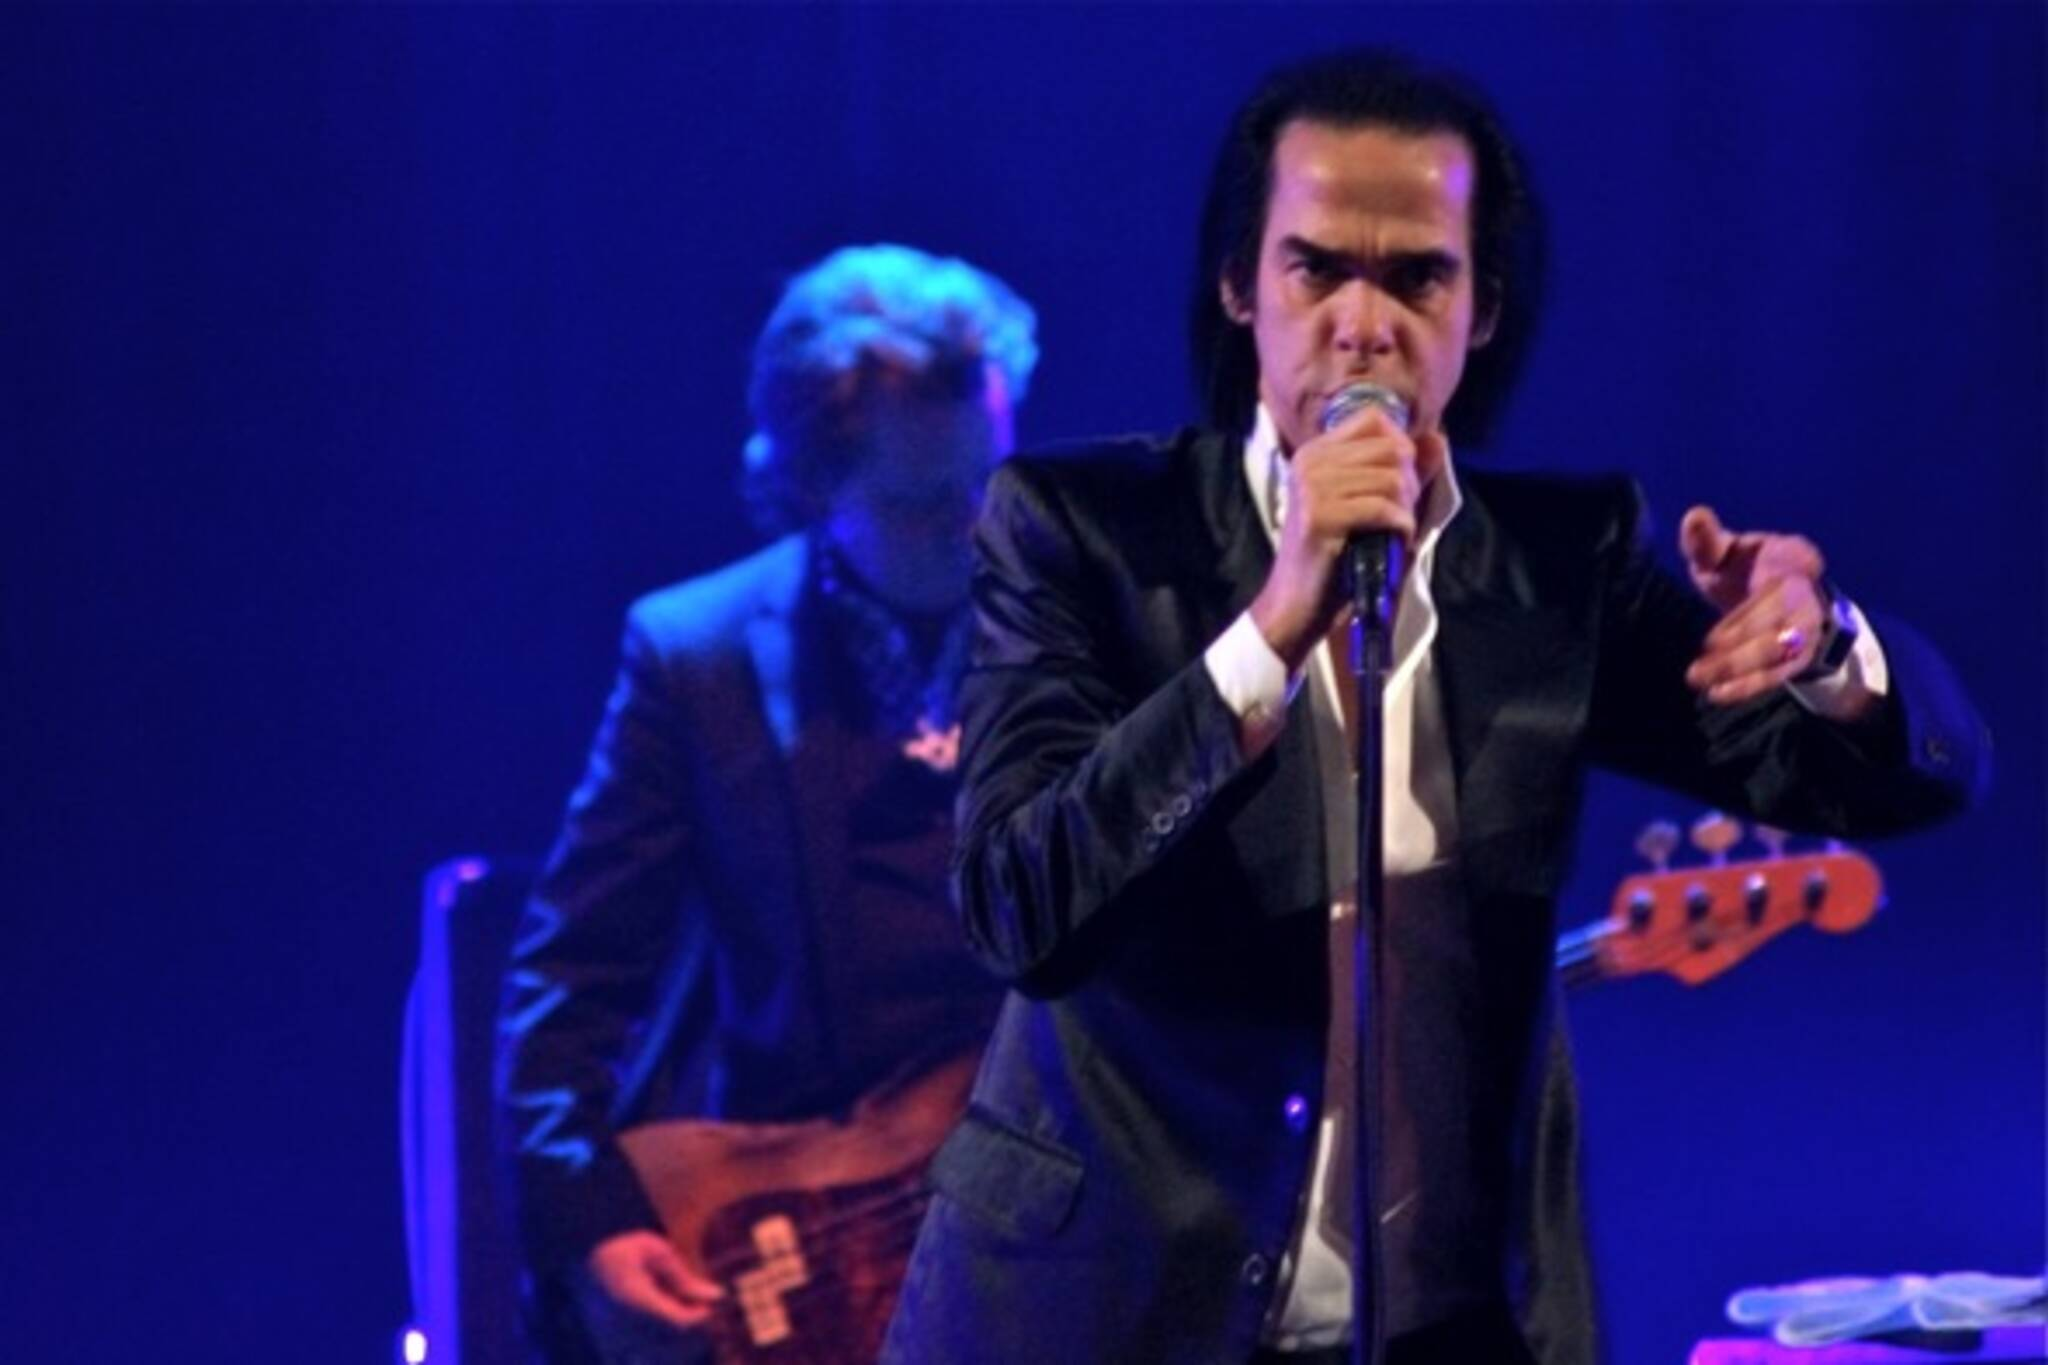 Nick Cave and the Bad Seeds at Massey Hall